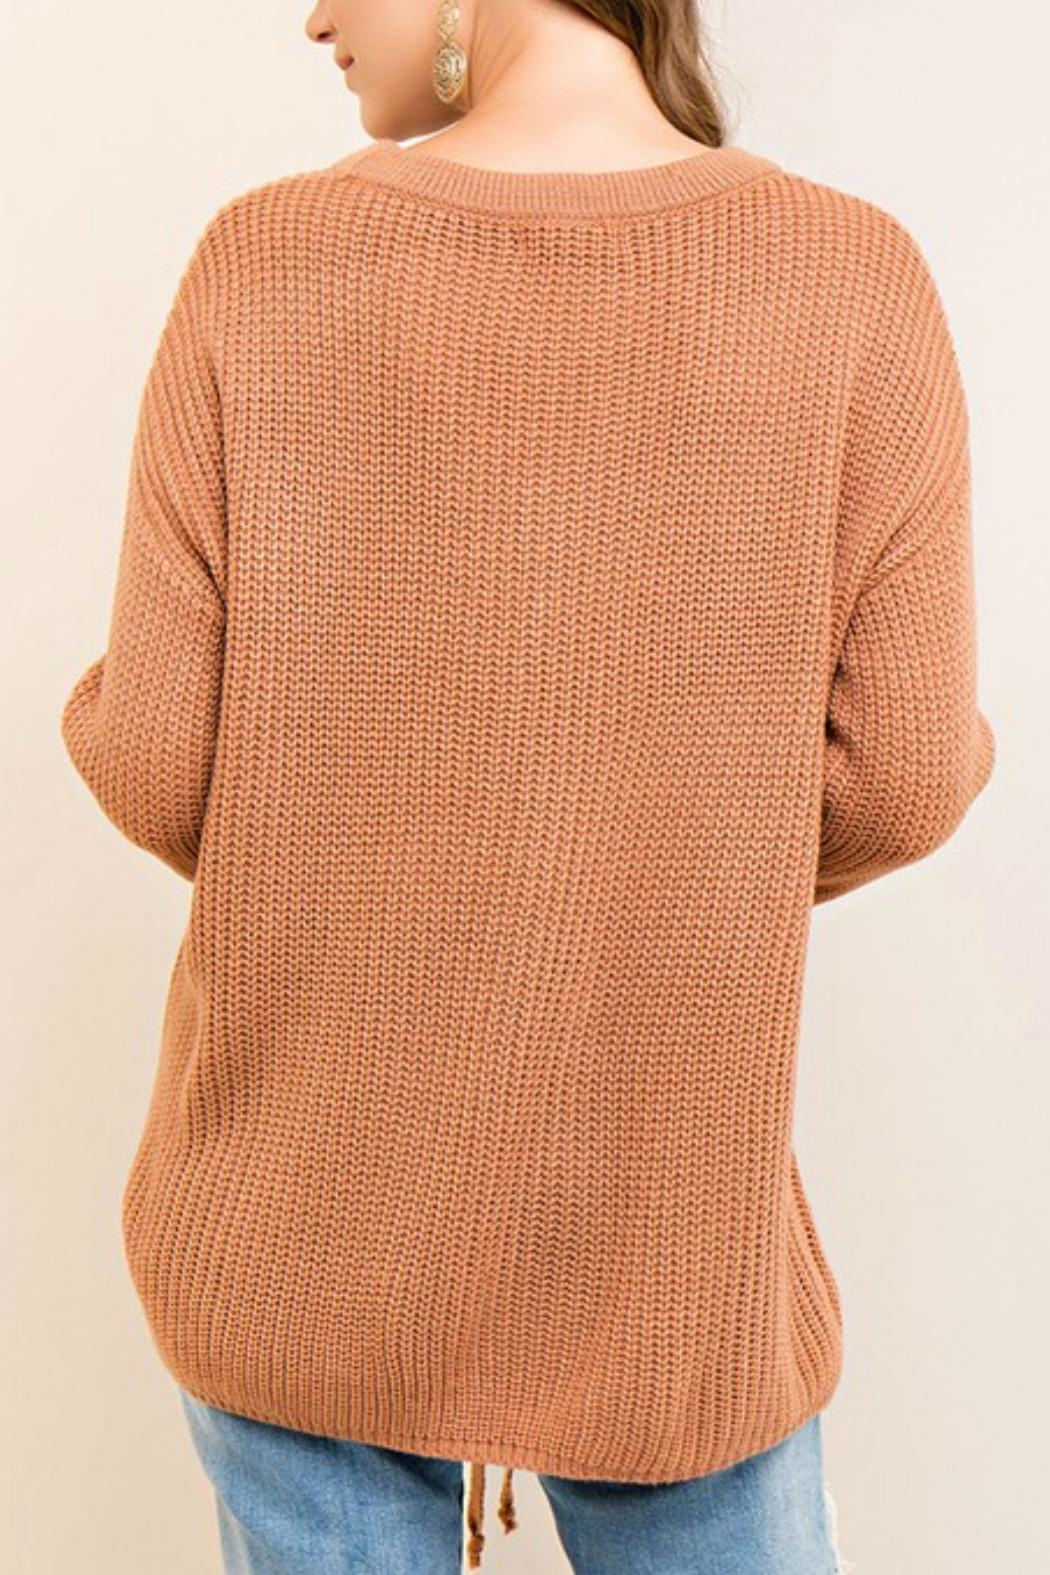 Entro Lace Up Sweater - Front Full Image